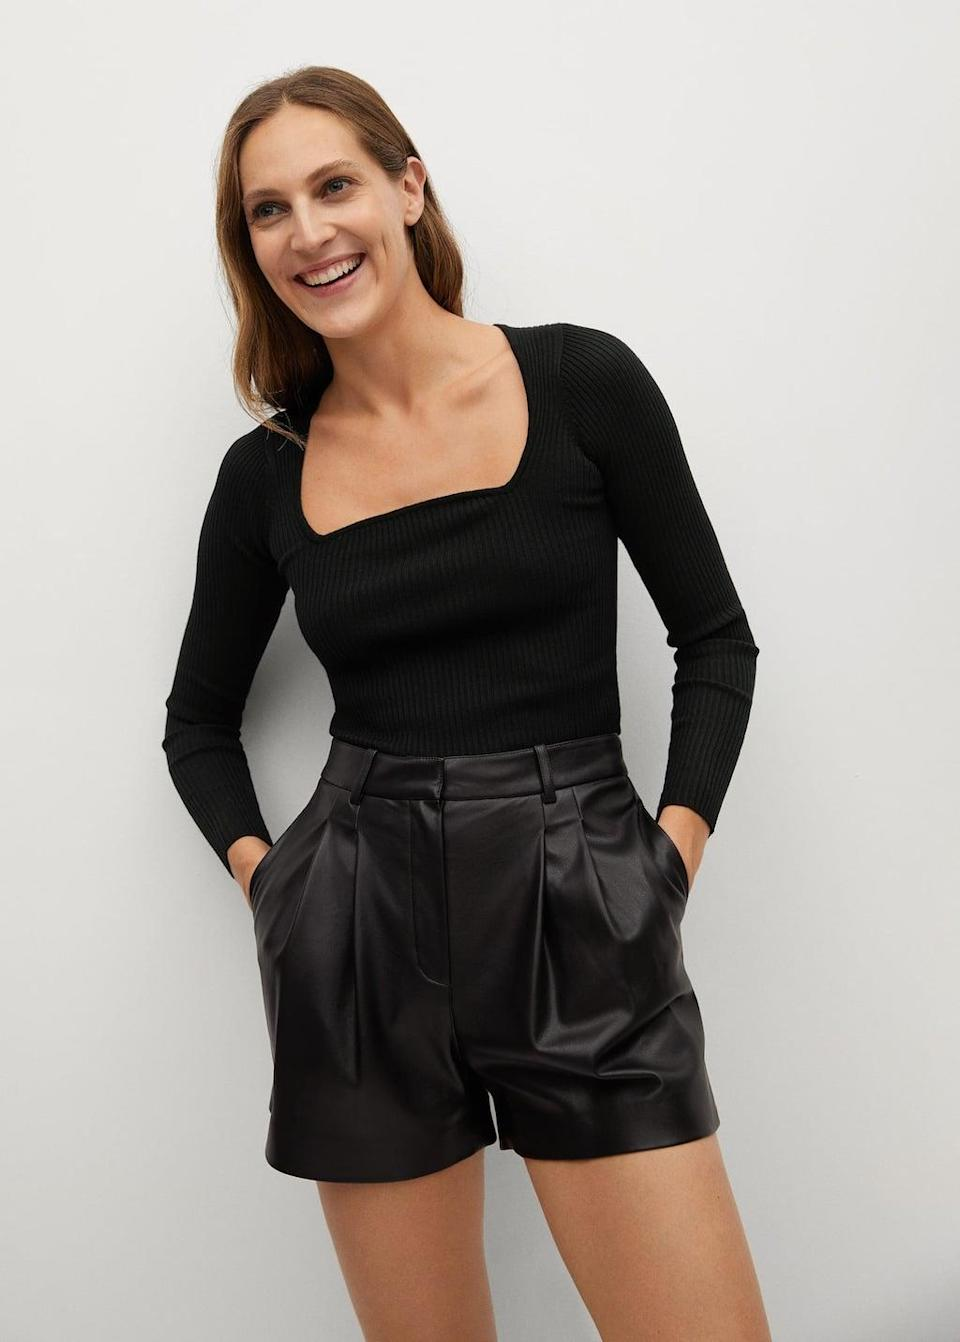 <p>Rock an edgy monochrome look by pairing this <span>Mango Ribbed Fine-knit Sweater</span> ($40) with black leather shorts.</p>